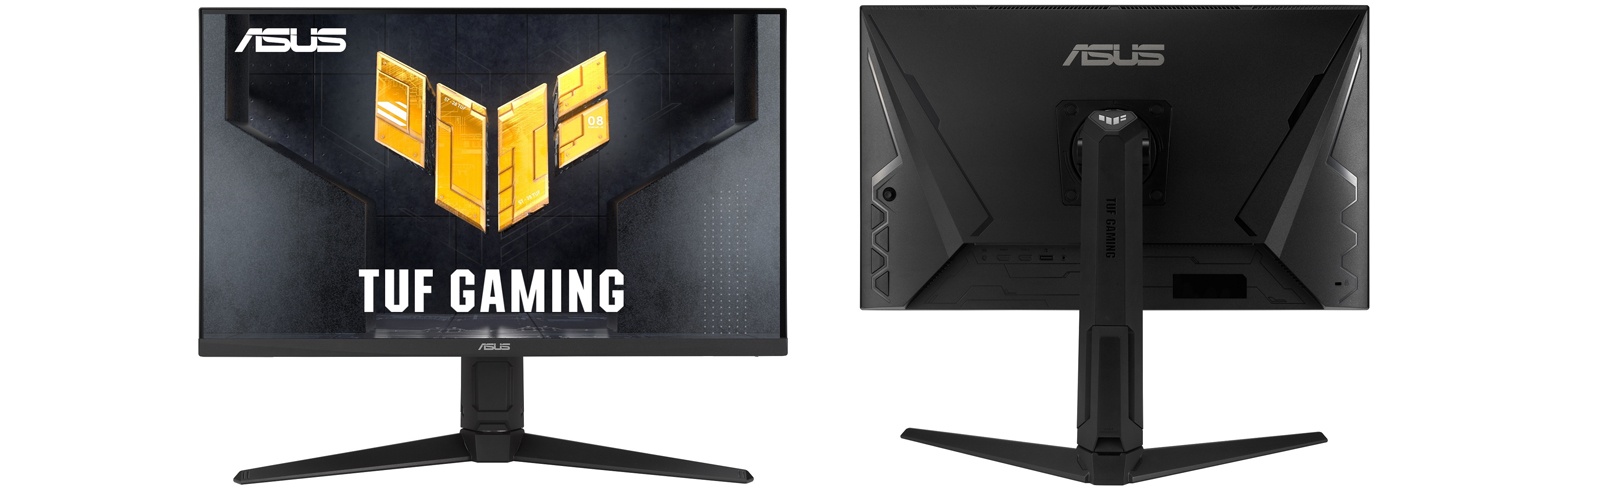 The Asus TUF Gaming VG28UQL1A with a 4K Fast IPS display and 144Hz refresh rate will